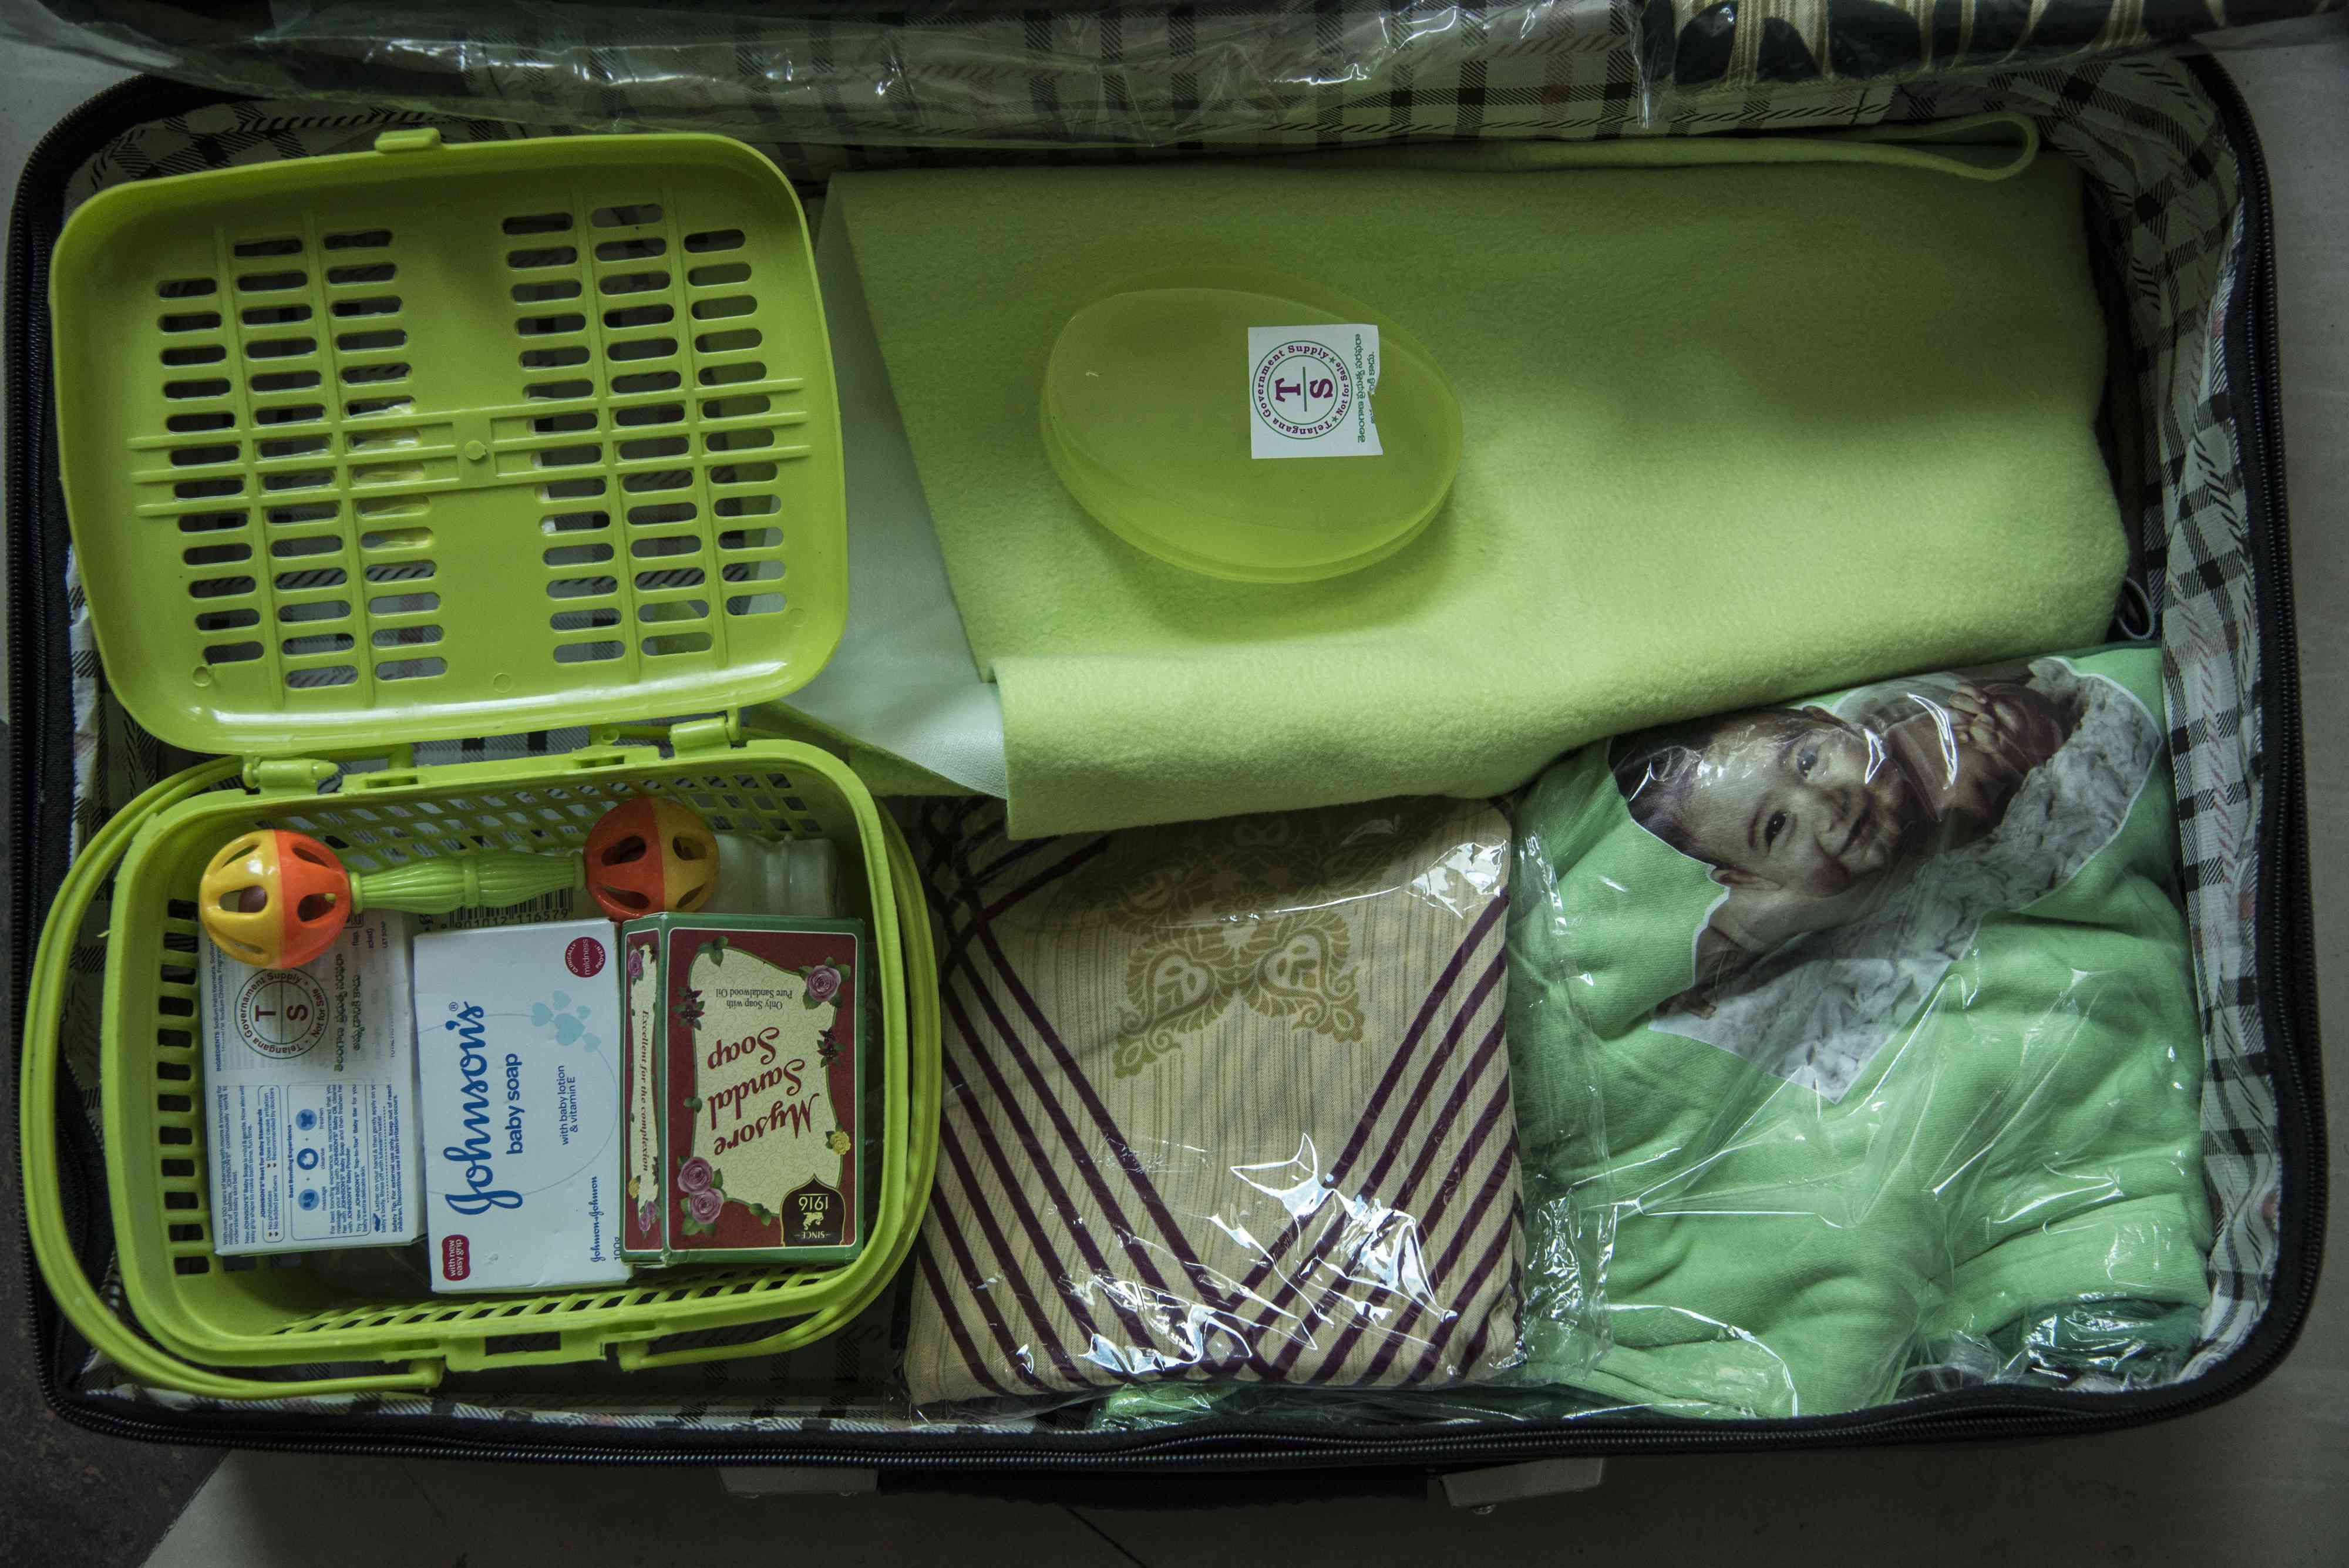 The KCR Kit equipped with 16 items to help care for a newborn child. (Photo: Saumya Khandelwal)